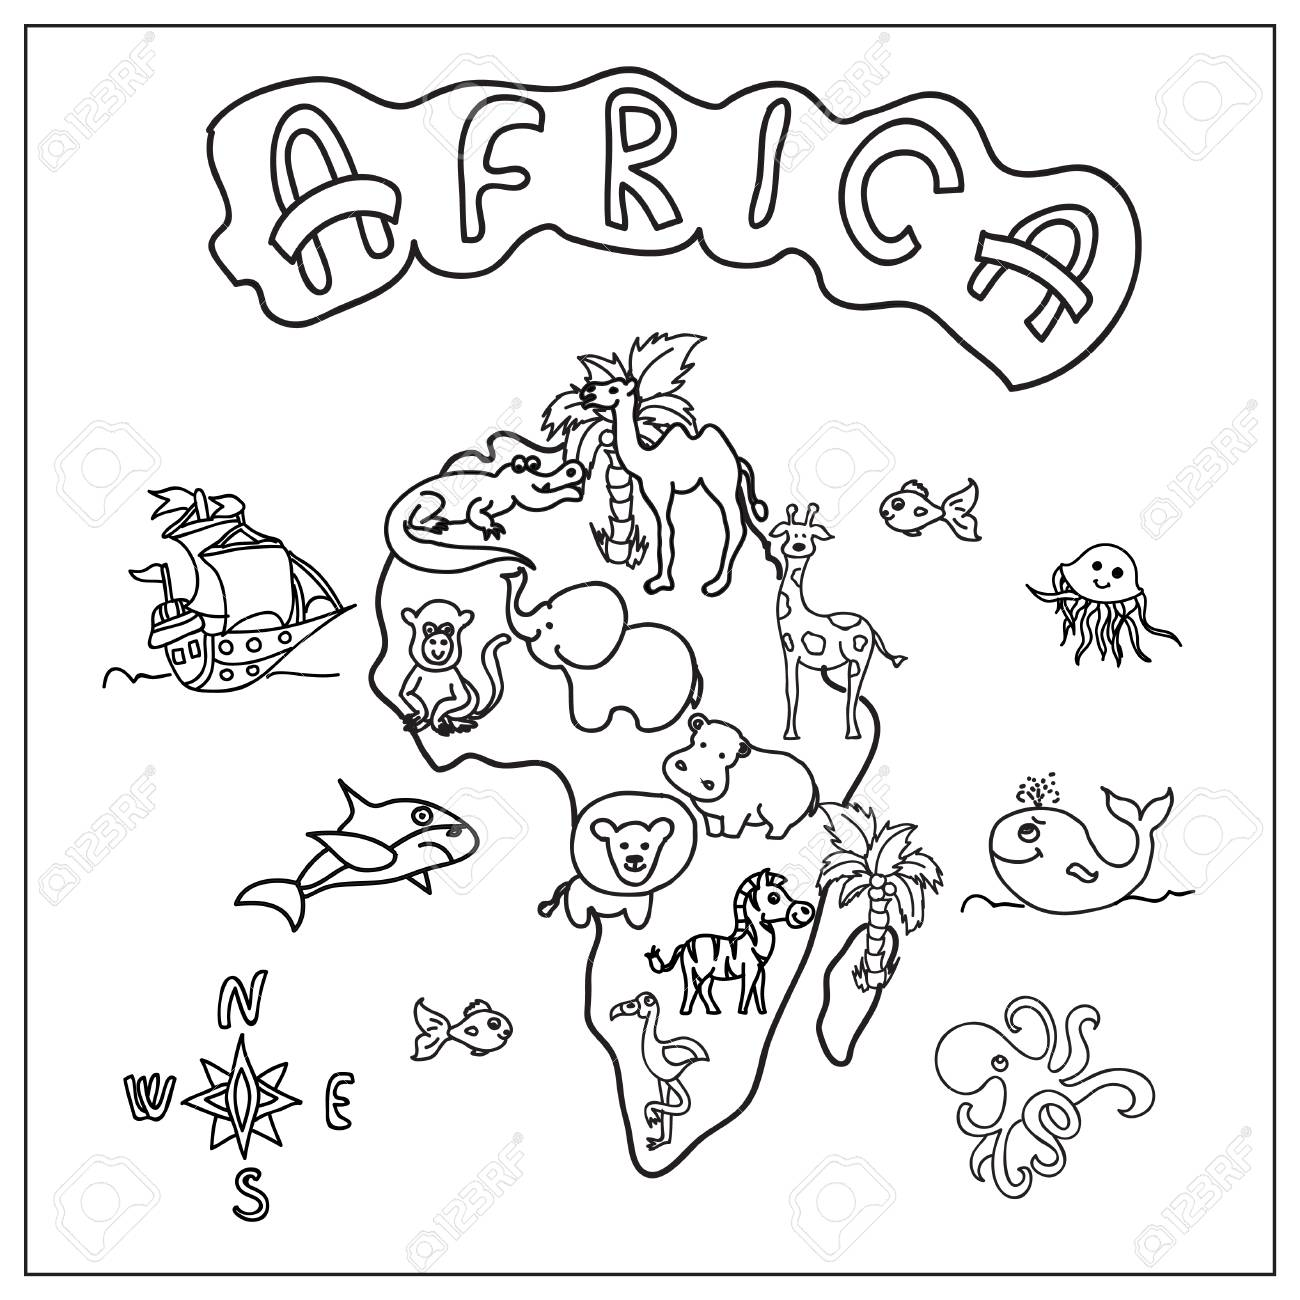 1300x1300 Africa Continent Kids Map Coloring Page Stock Photo, Picture